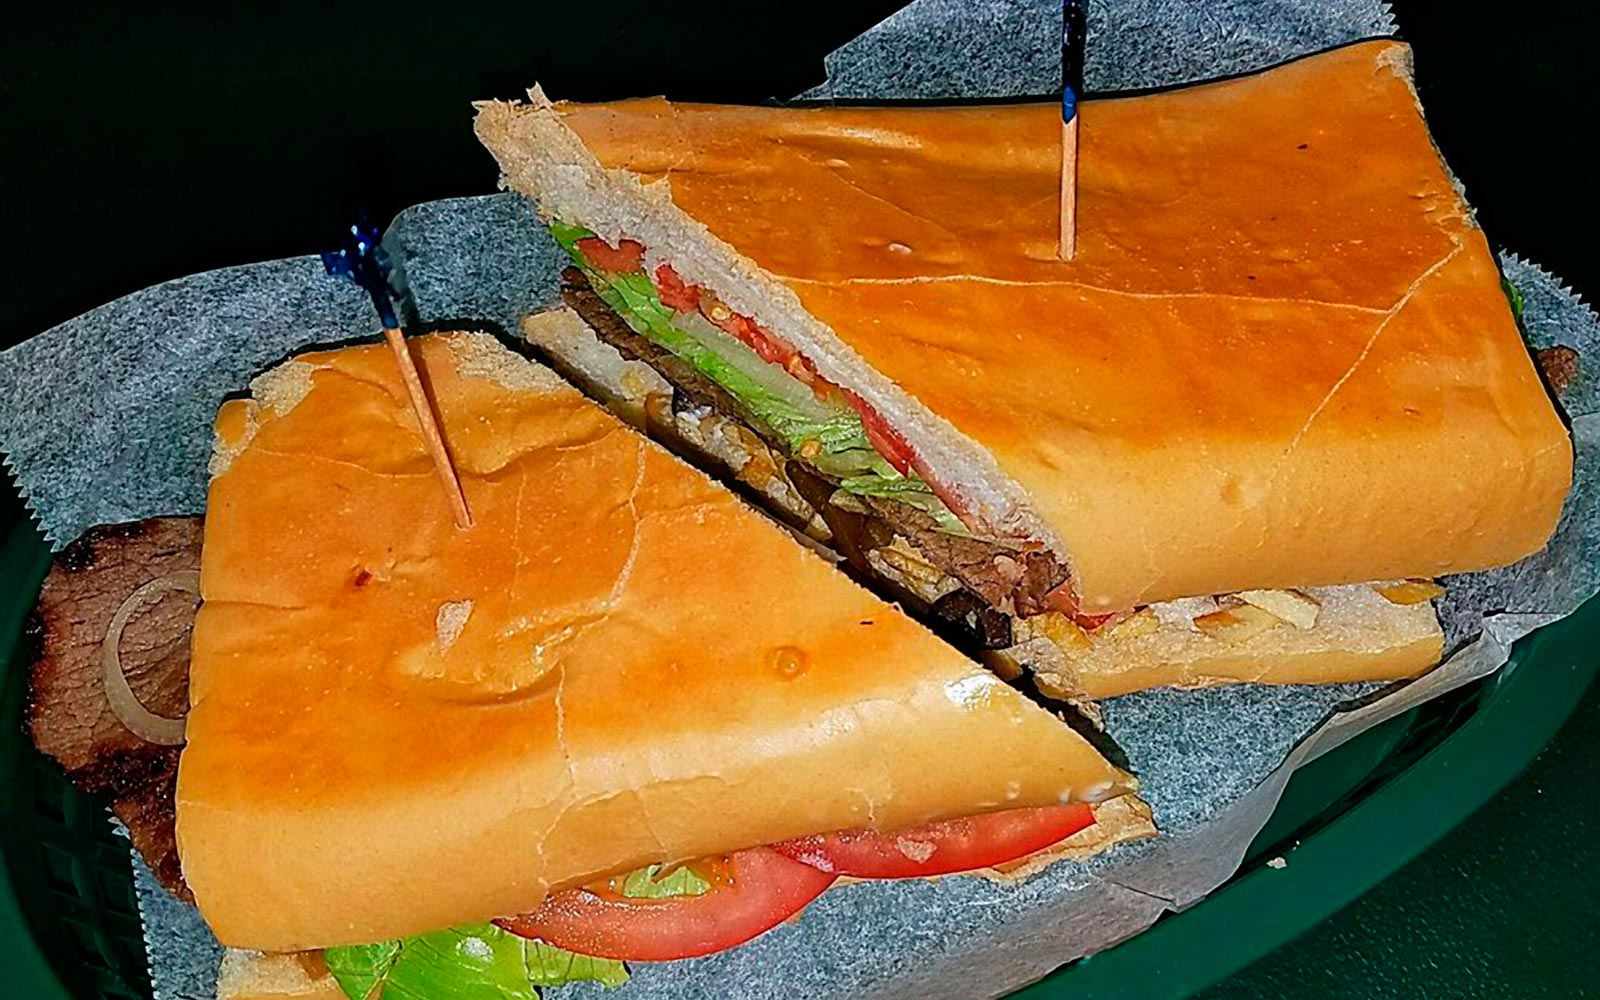 Sandwich at Franky's Deli Warehouse in Hialeah Florida